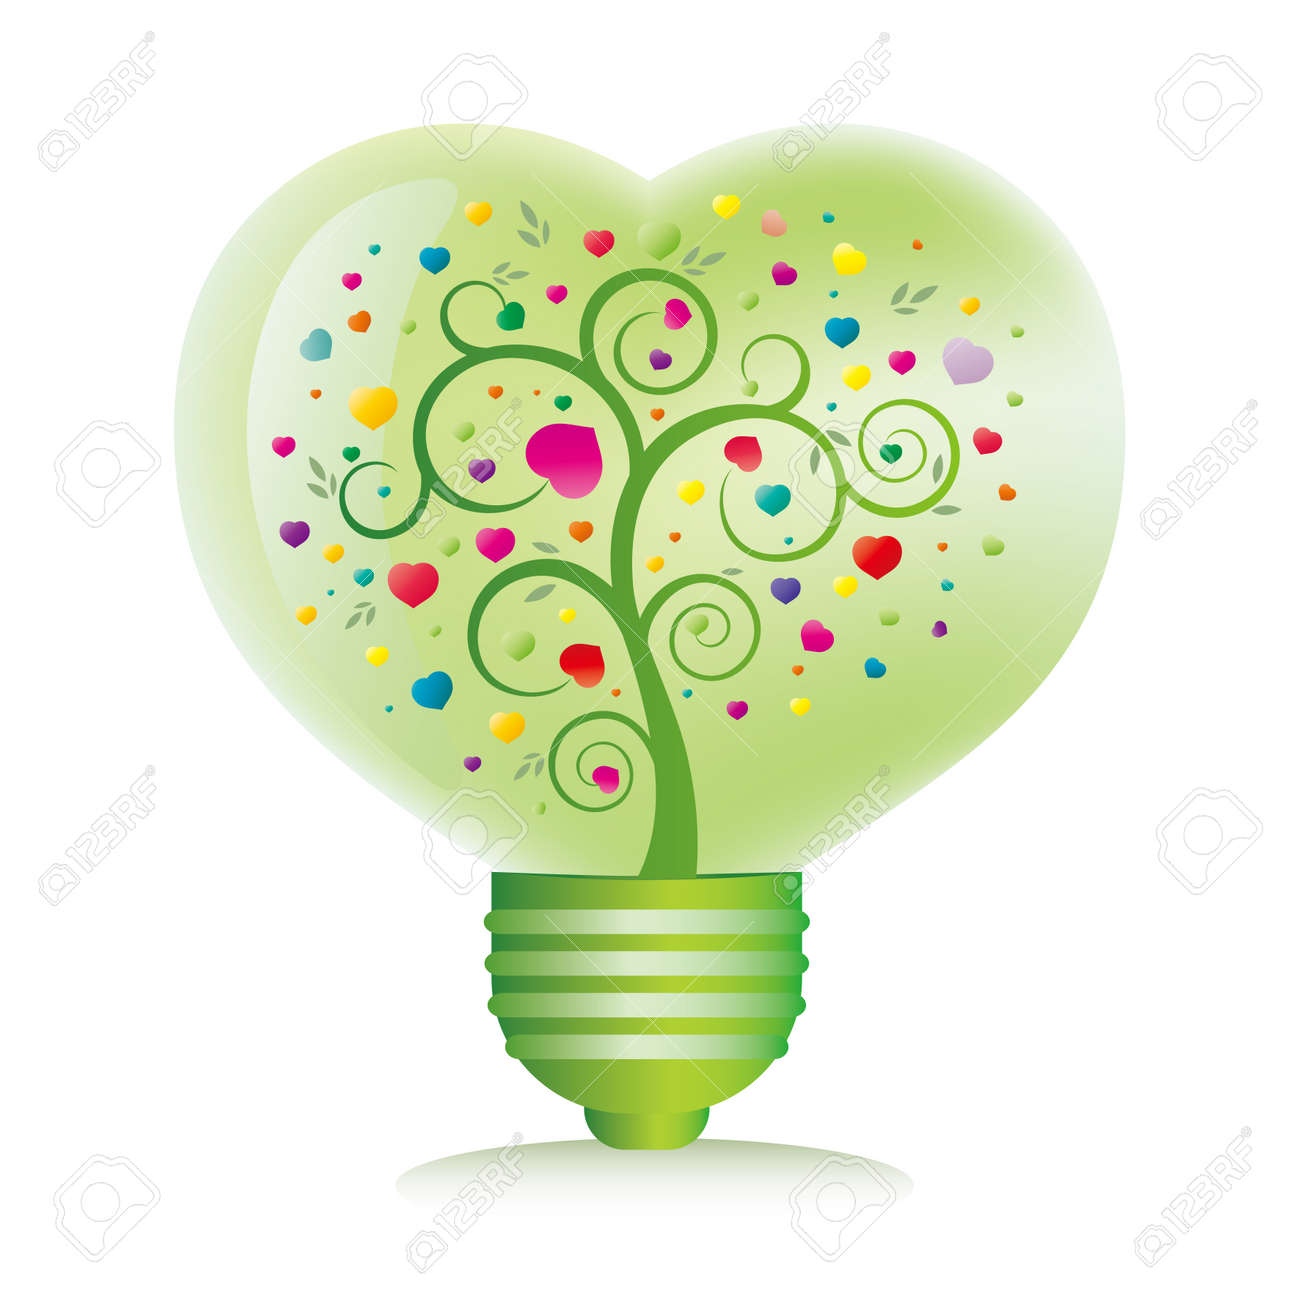 green heart light bulb isolated on white background Stock Vector - 7528508